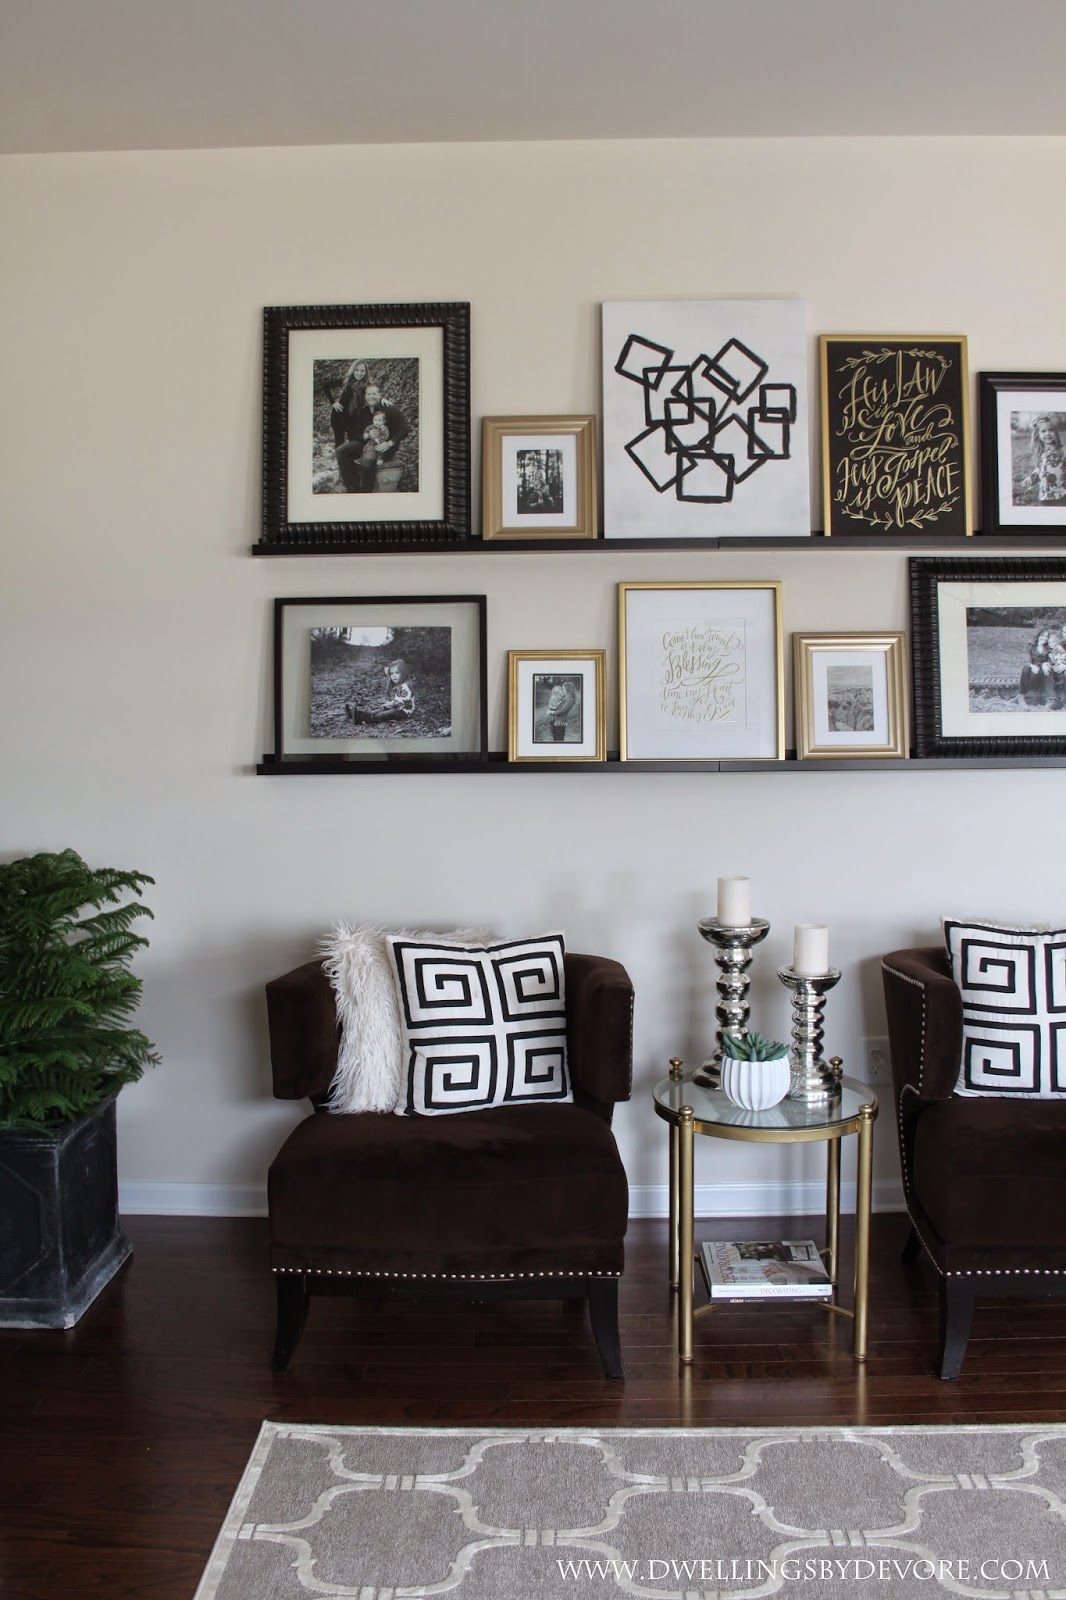 Dwellings By DeVore: Picture Ledge Gallery Wall